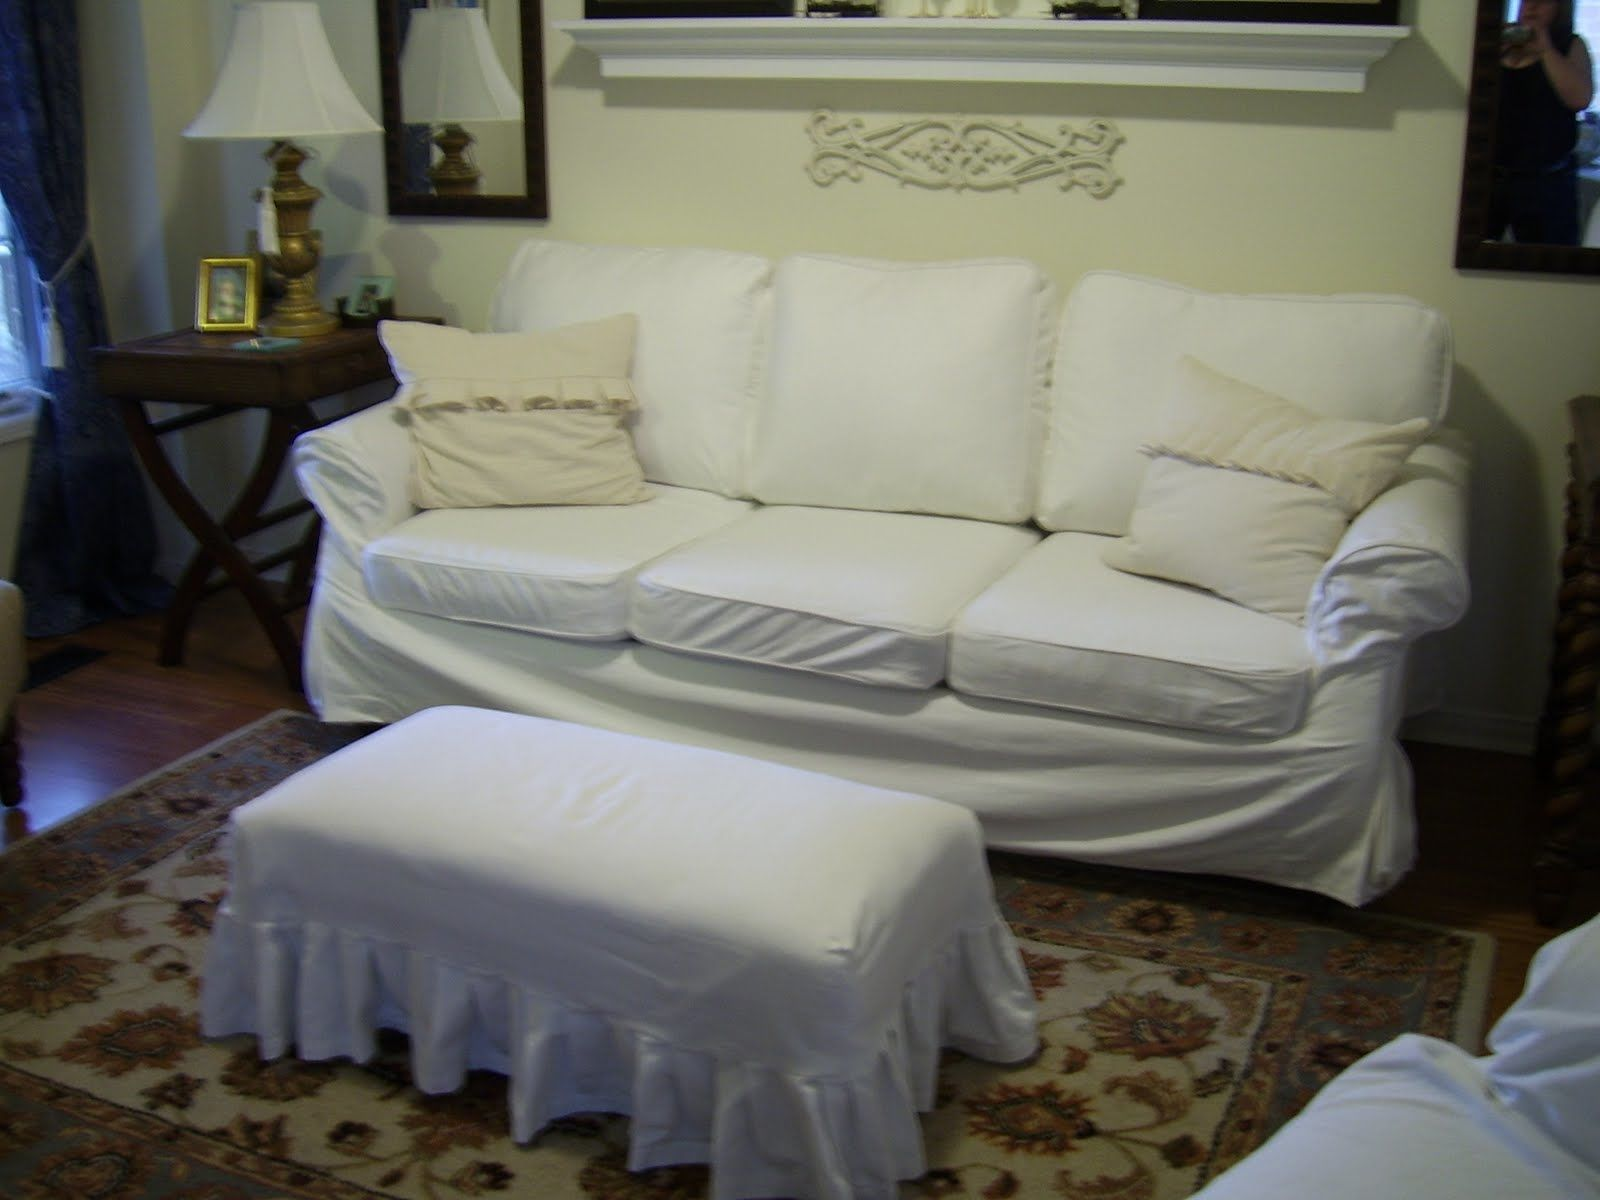 incredible slipcovers for sofas with cushions decoration-Luxury Slipcovers for sofas with Cushions Decoration